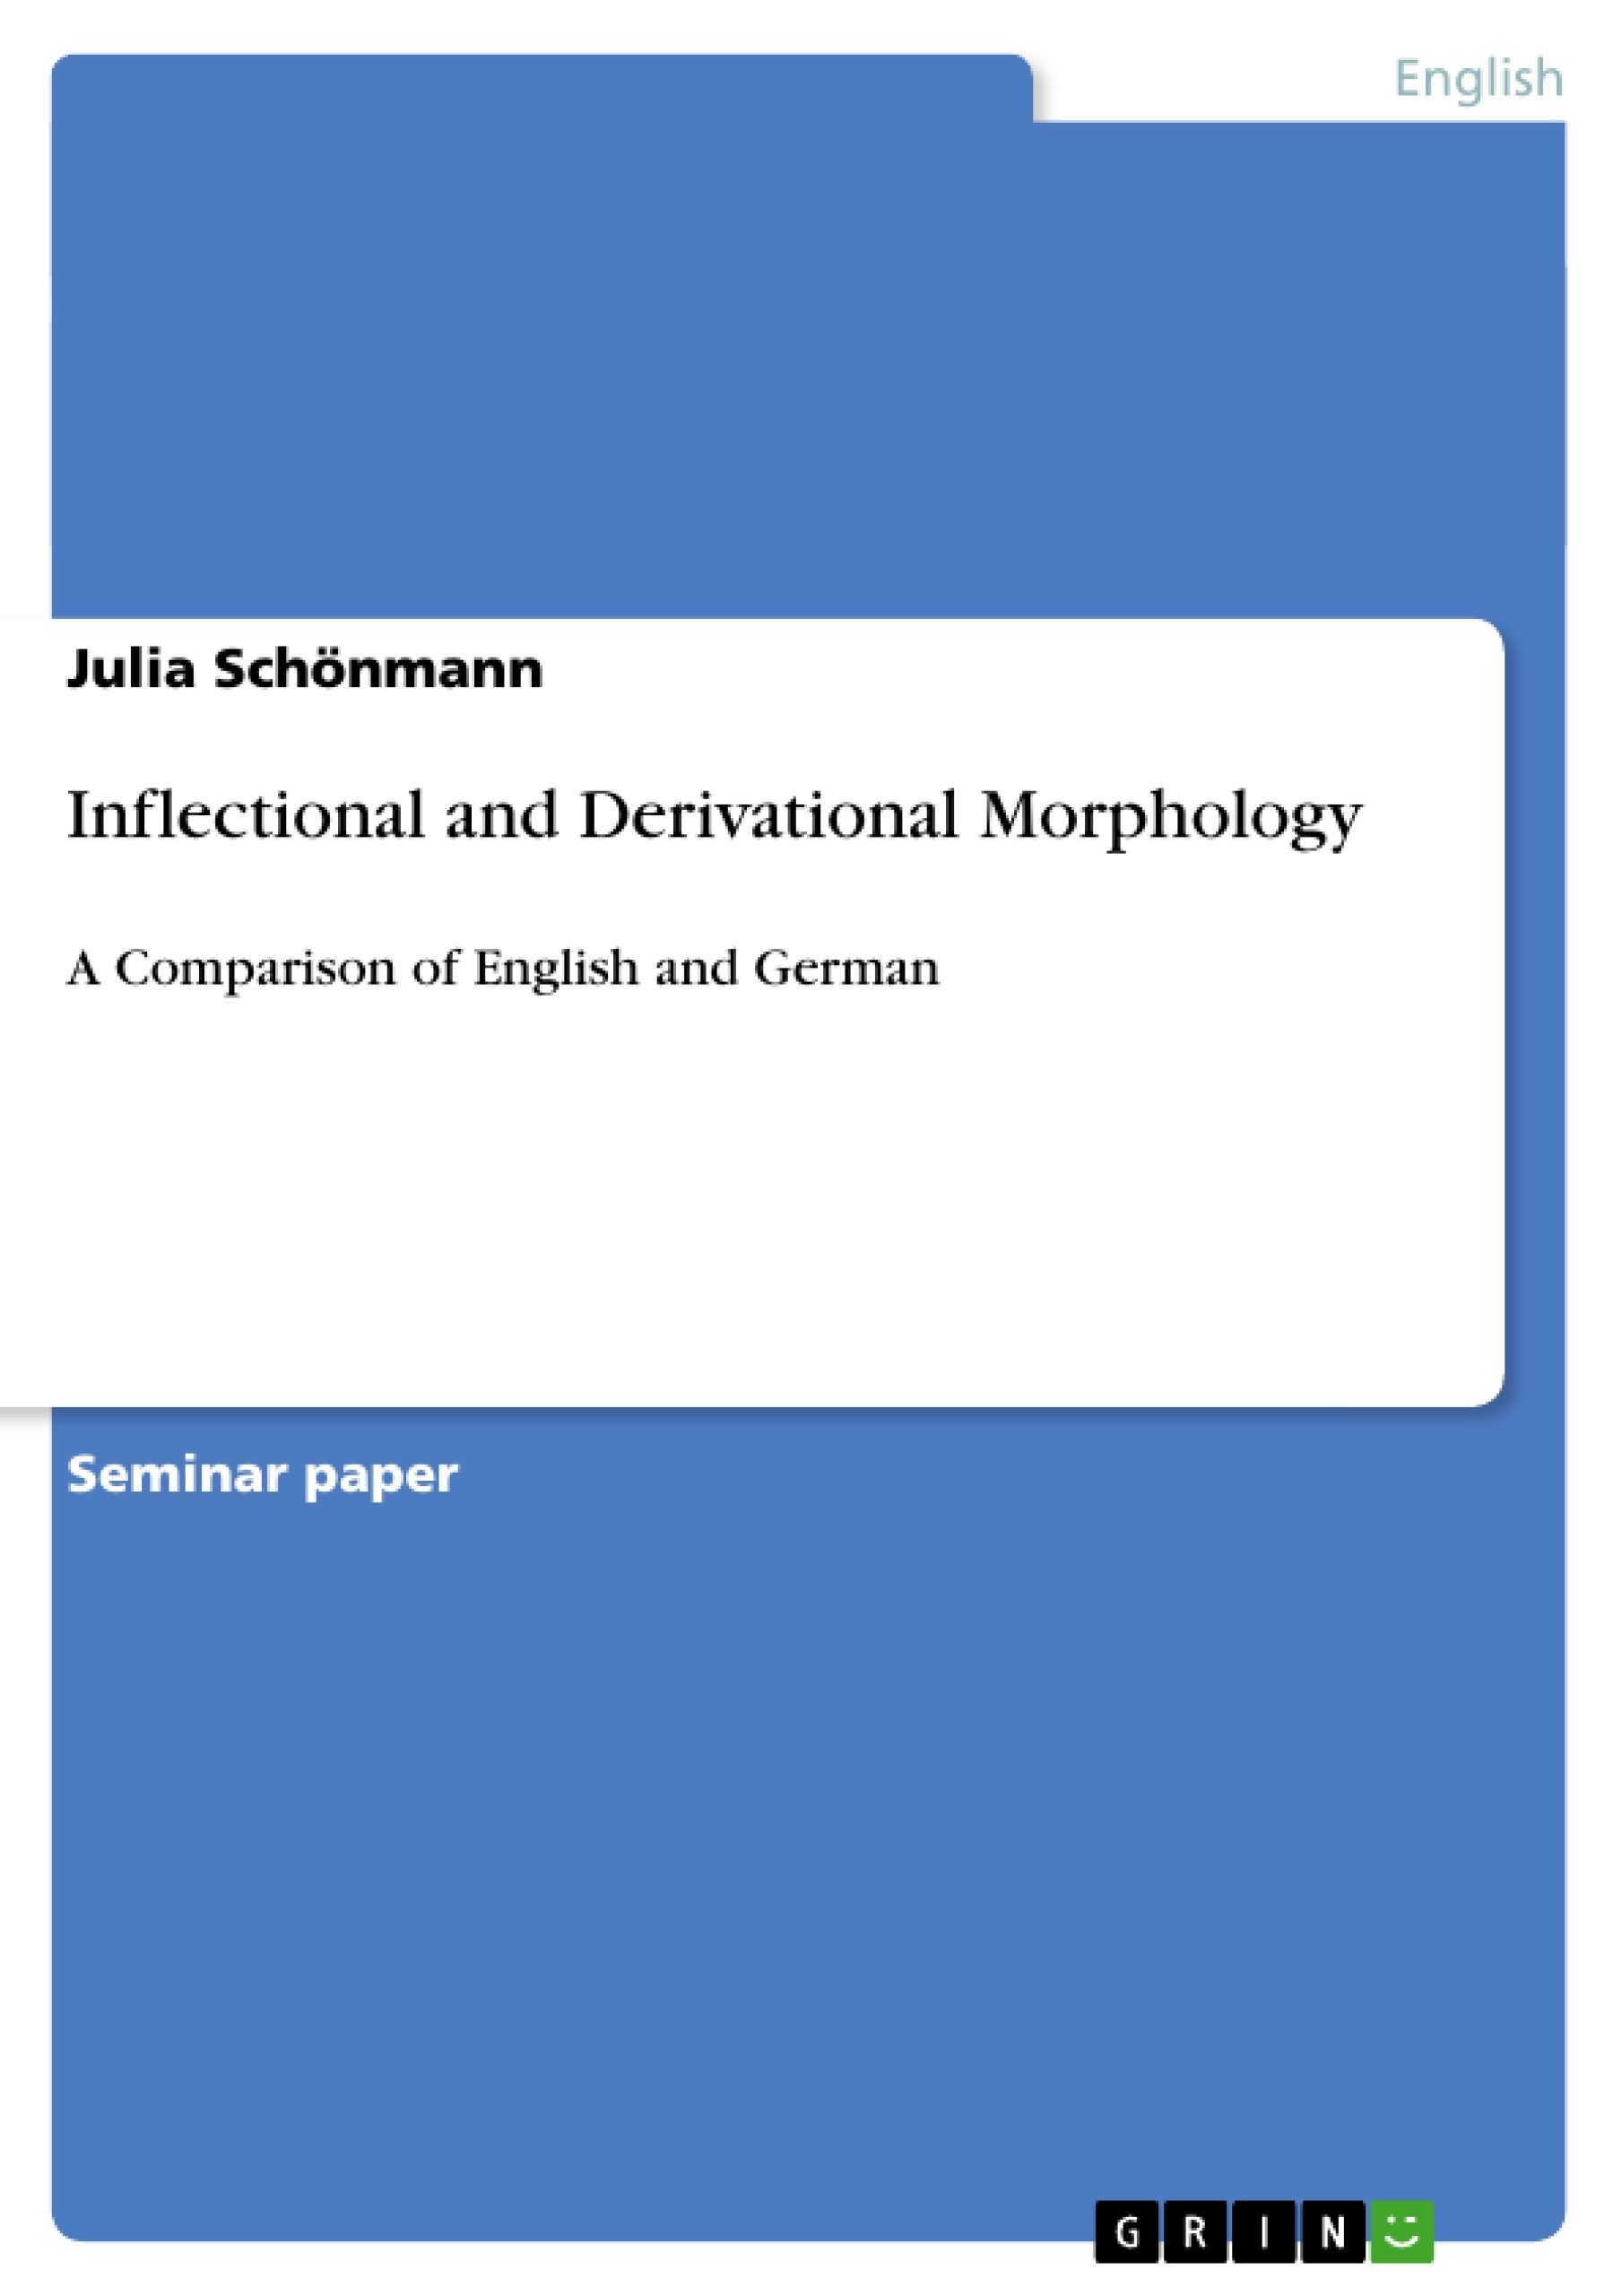 Title: Inflectional and Derivational Morphology